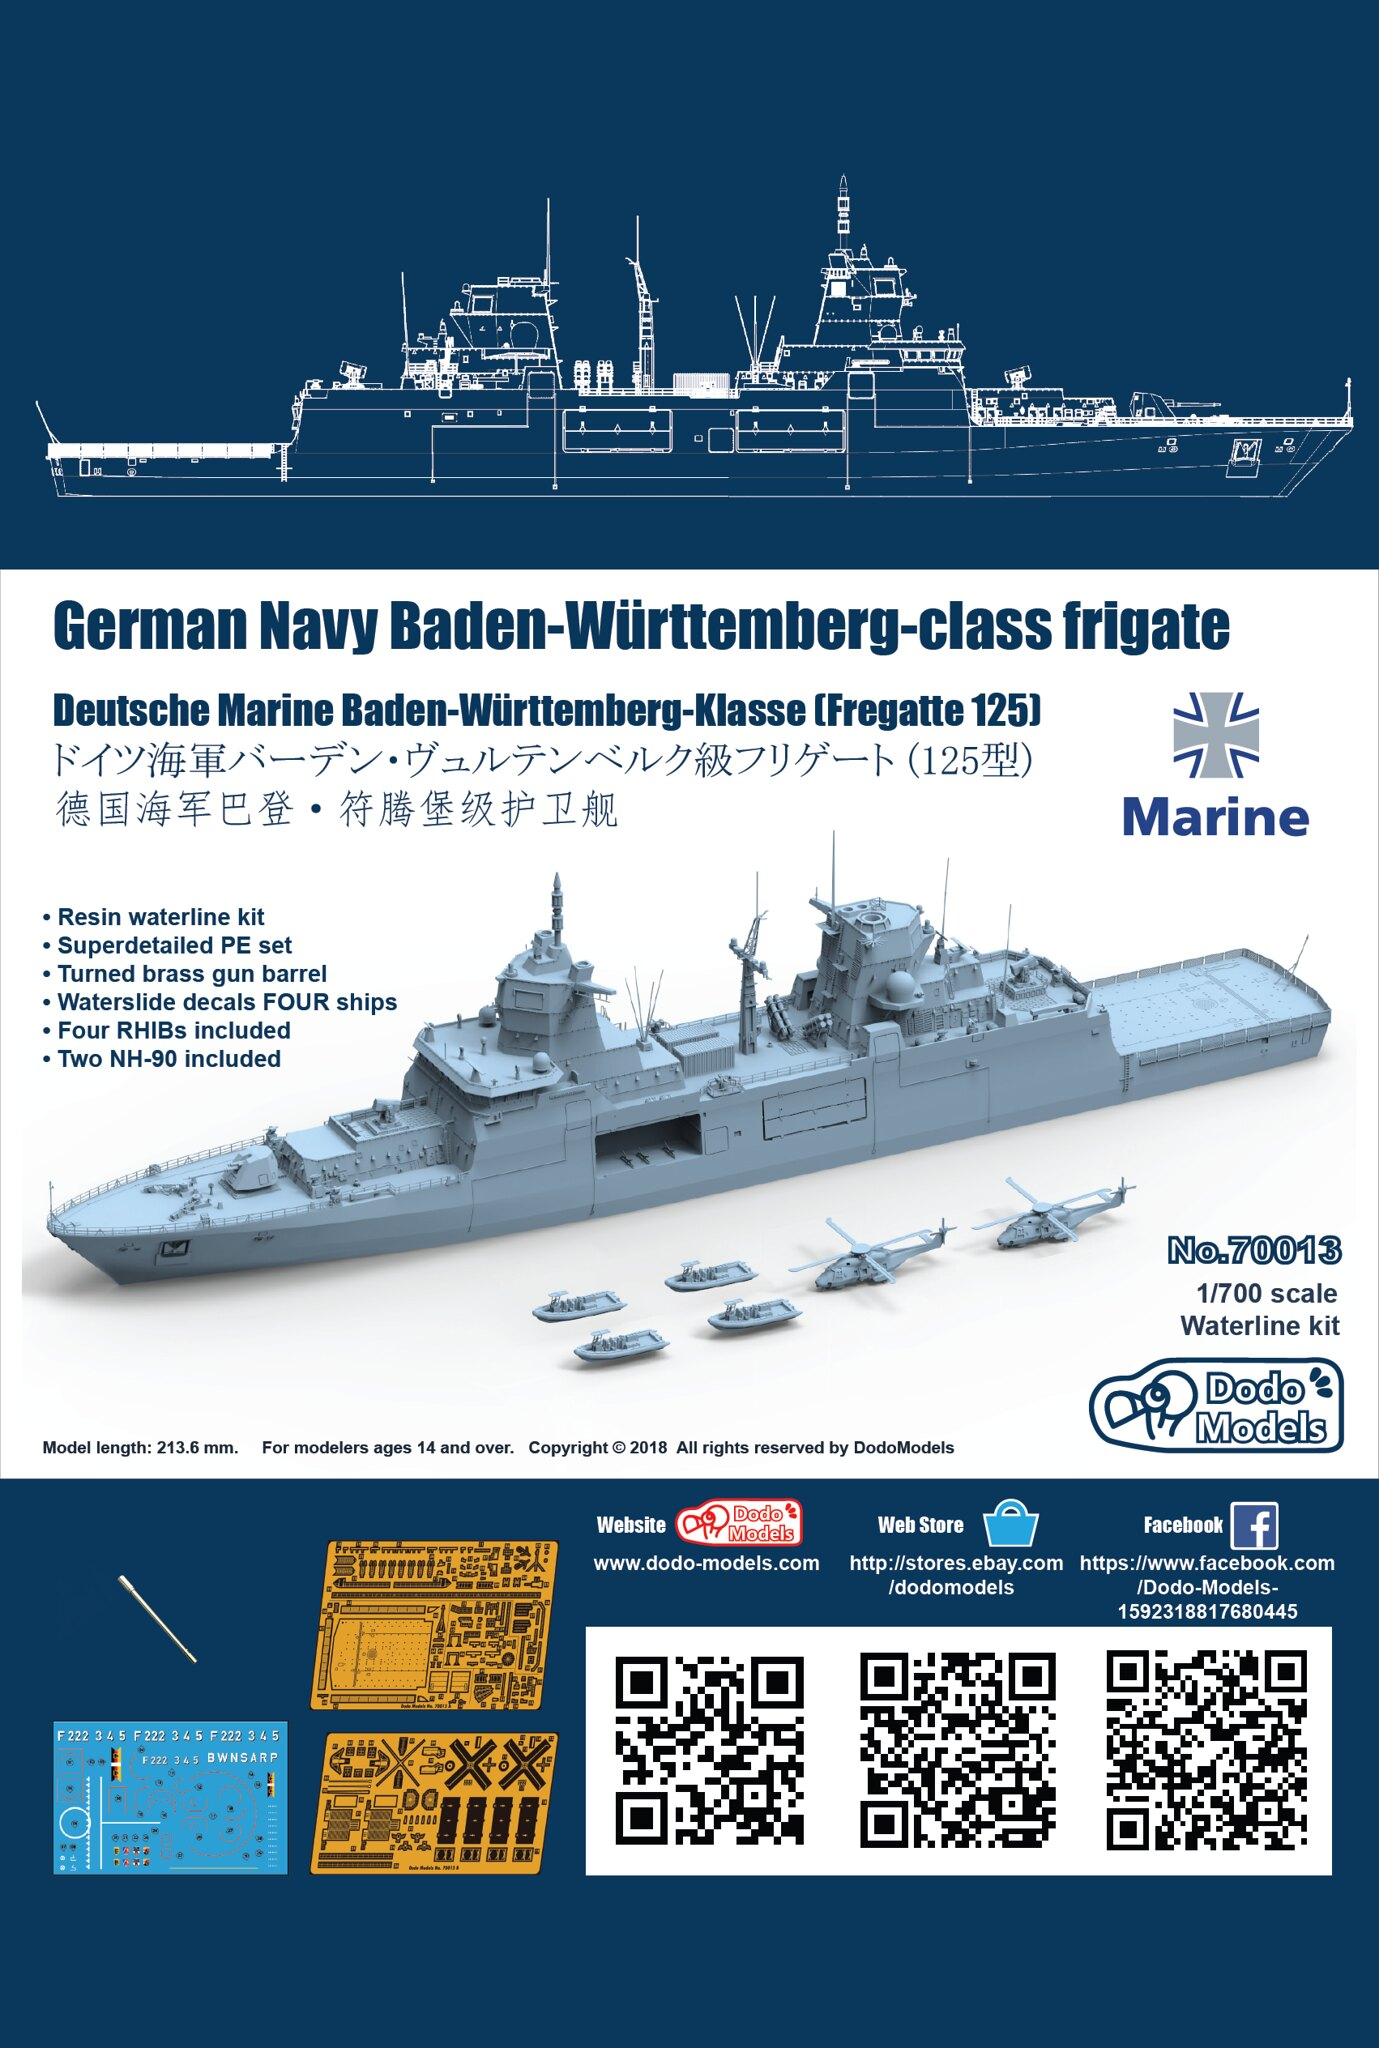 The Ship Model Forum • View topic - DodoModels 70013 1/700 German